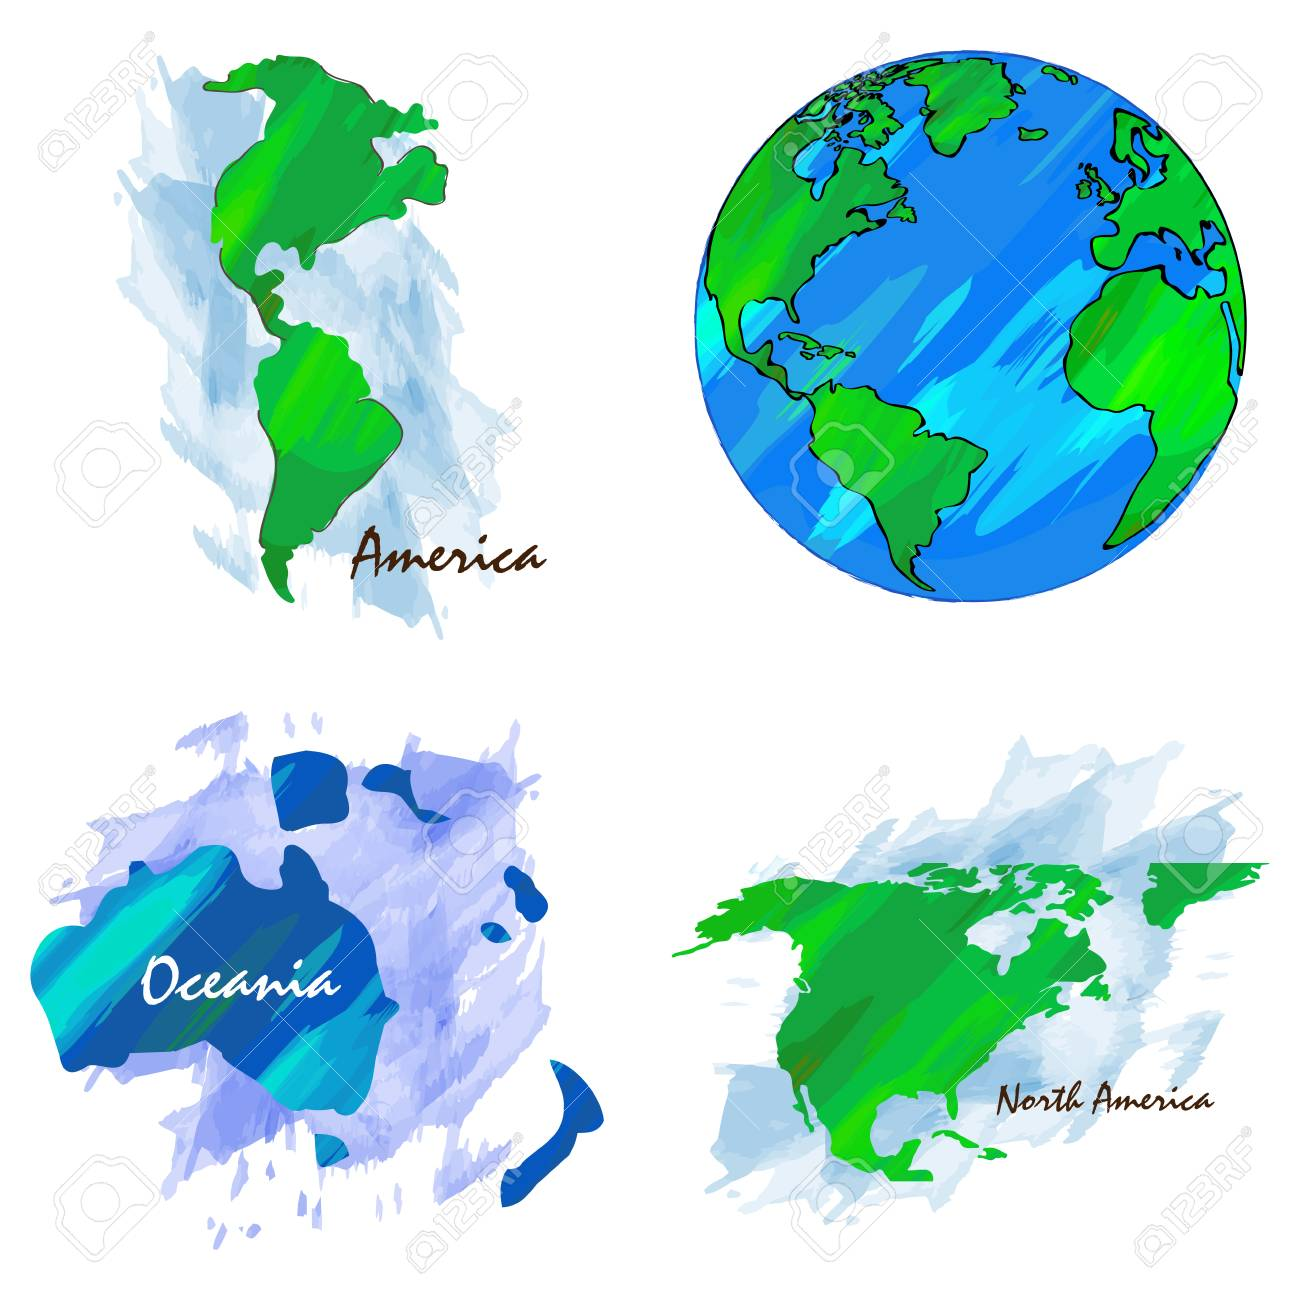 Set of different world maps, Vector illustration Different World Maps on topographic map, thematic map, different world flags, different boxes, different flowers, types of maps, different mountains, mappa mundi, different countries of the world, different map projections, different governments of the world,